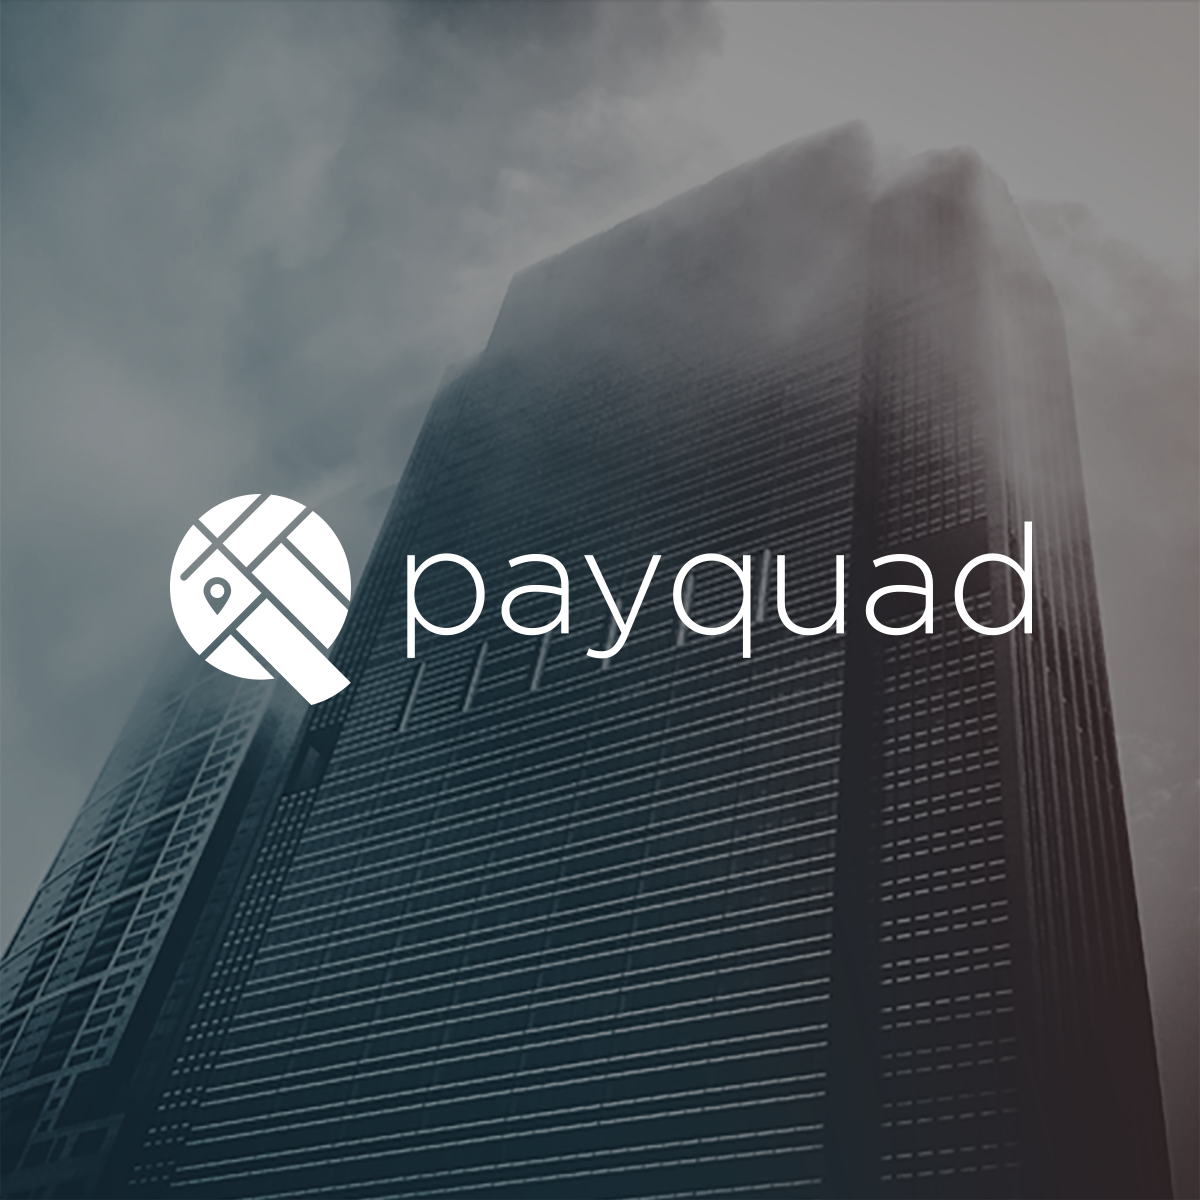 Payquad Solutions: A Case Study